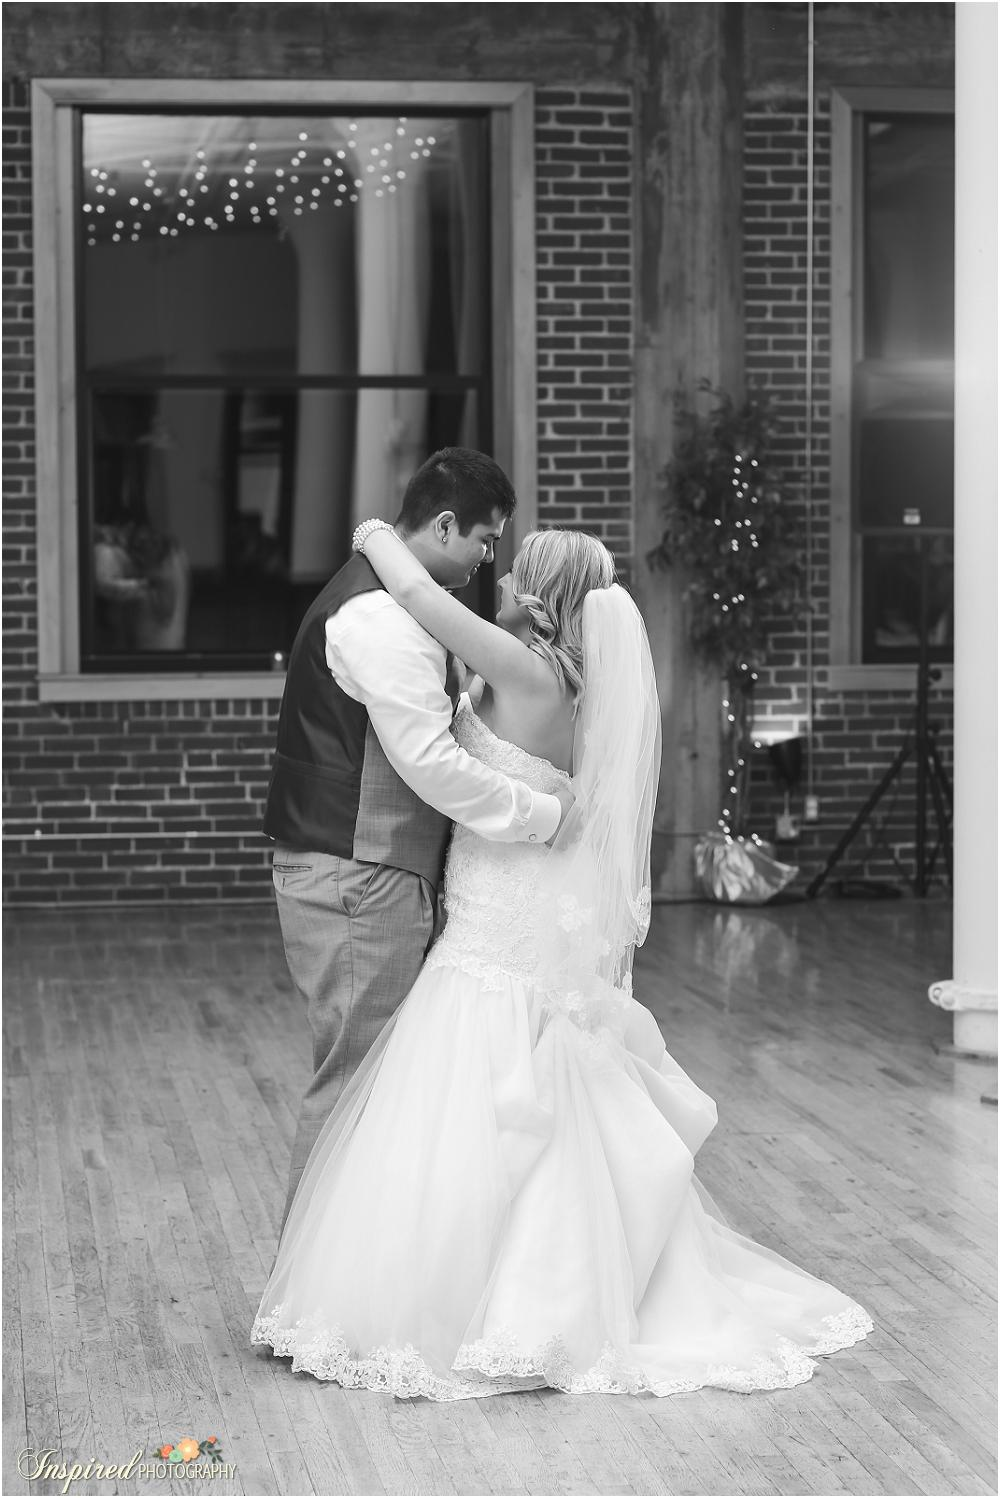 Windows On Washington Wedding, Downtown St. Louis, Reception Details, First Dance // www.inspiredphotographystl.com